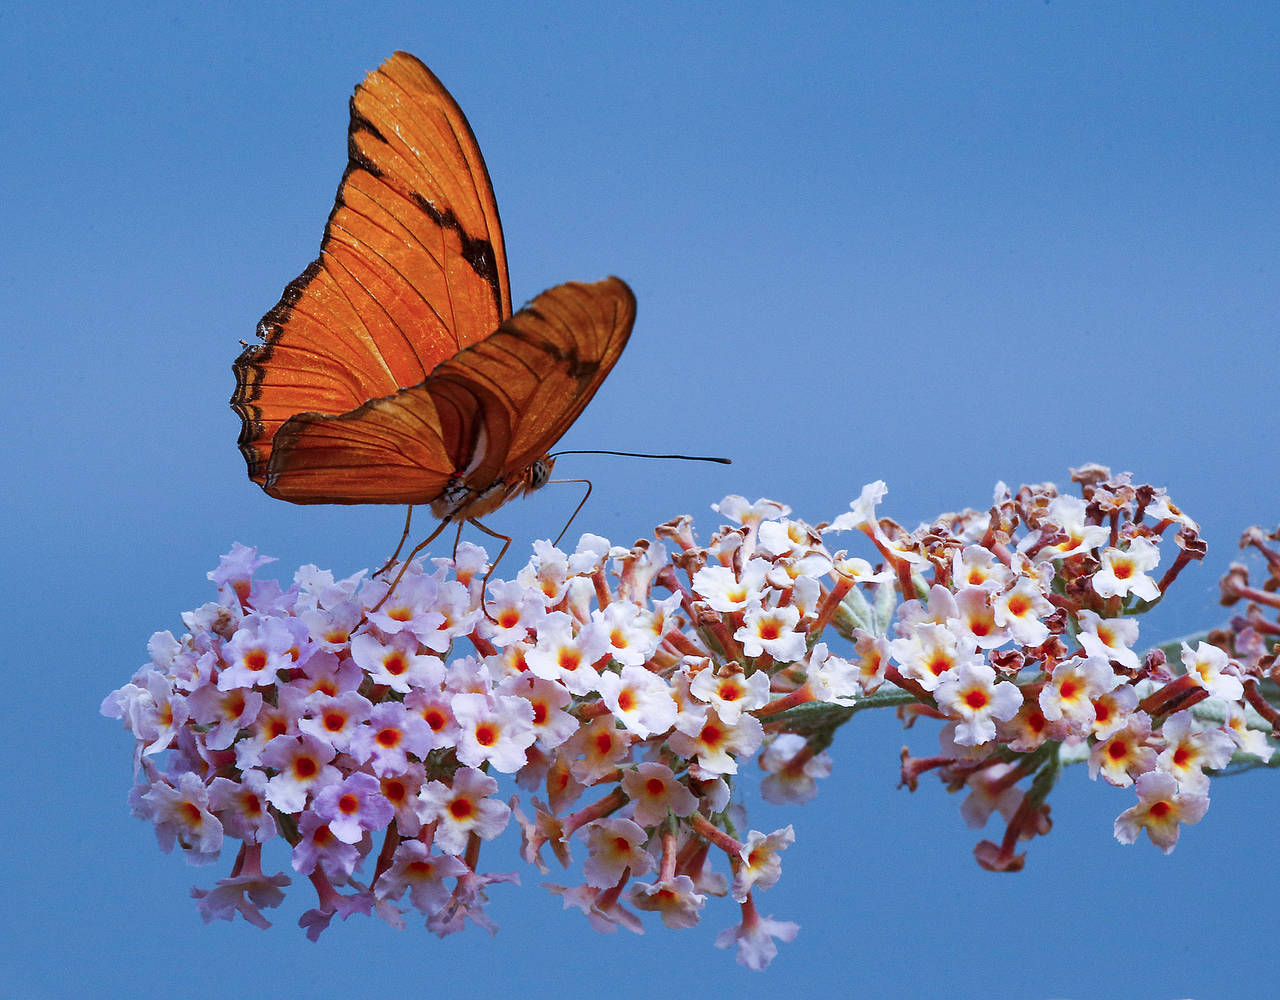 A Dryas iulia, more commonly known as a Julia butterfly, is seen at the zoo. (Ian Terry / The Herald)